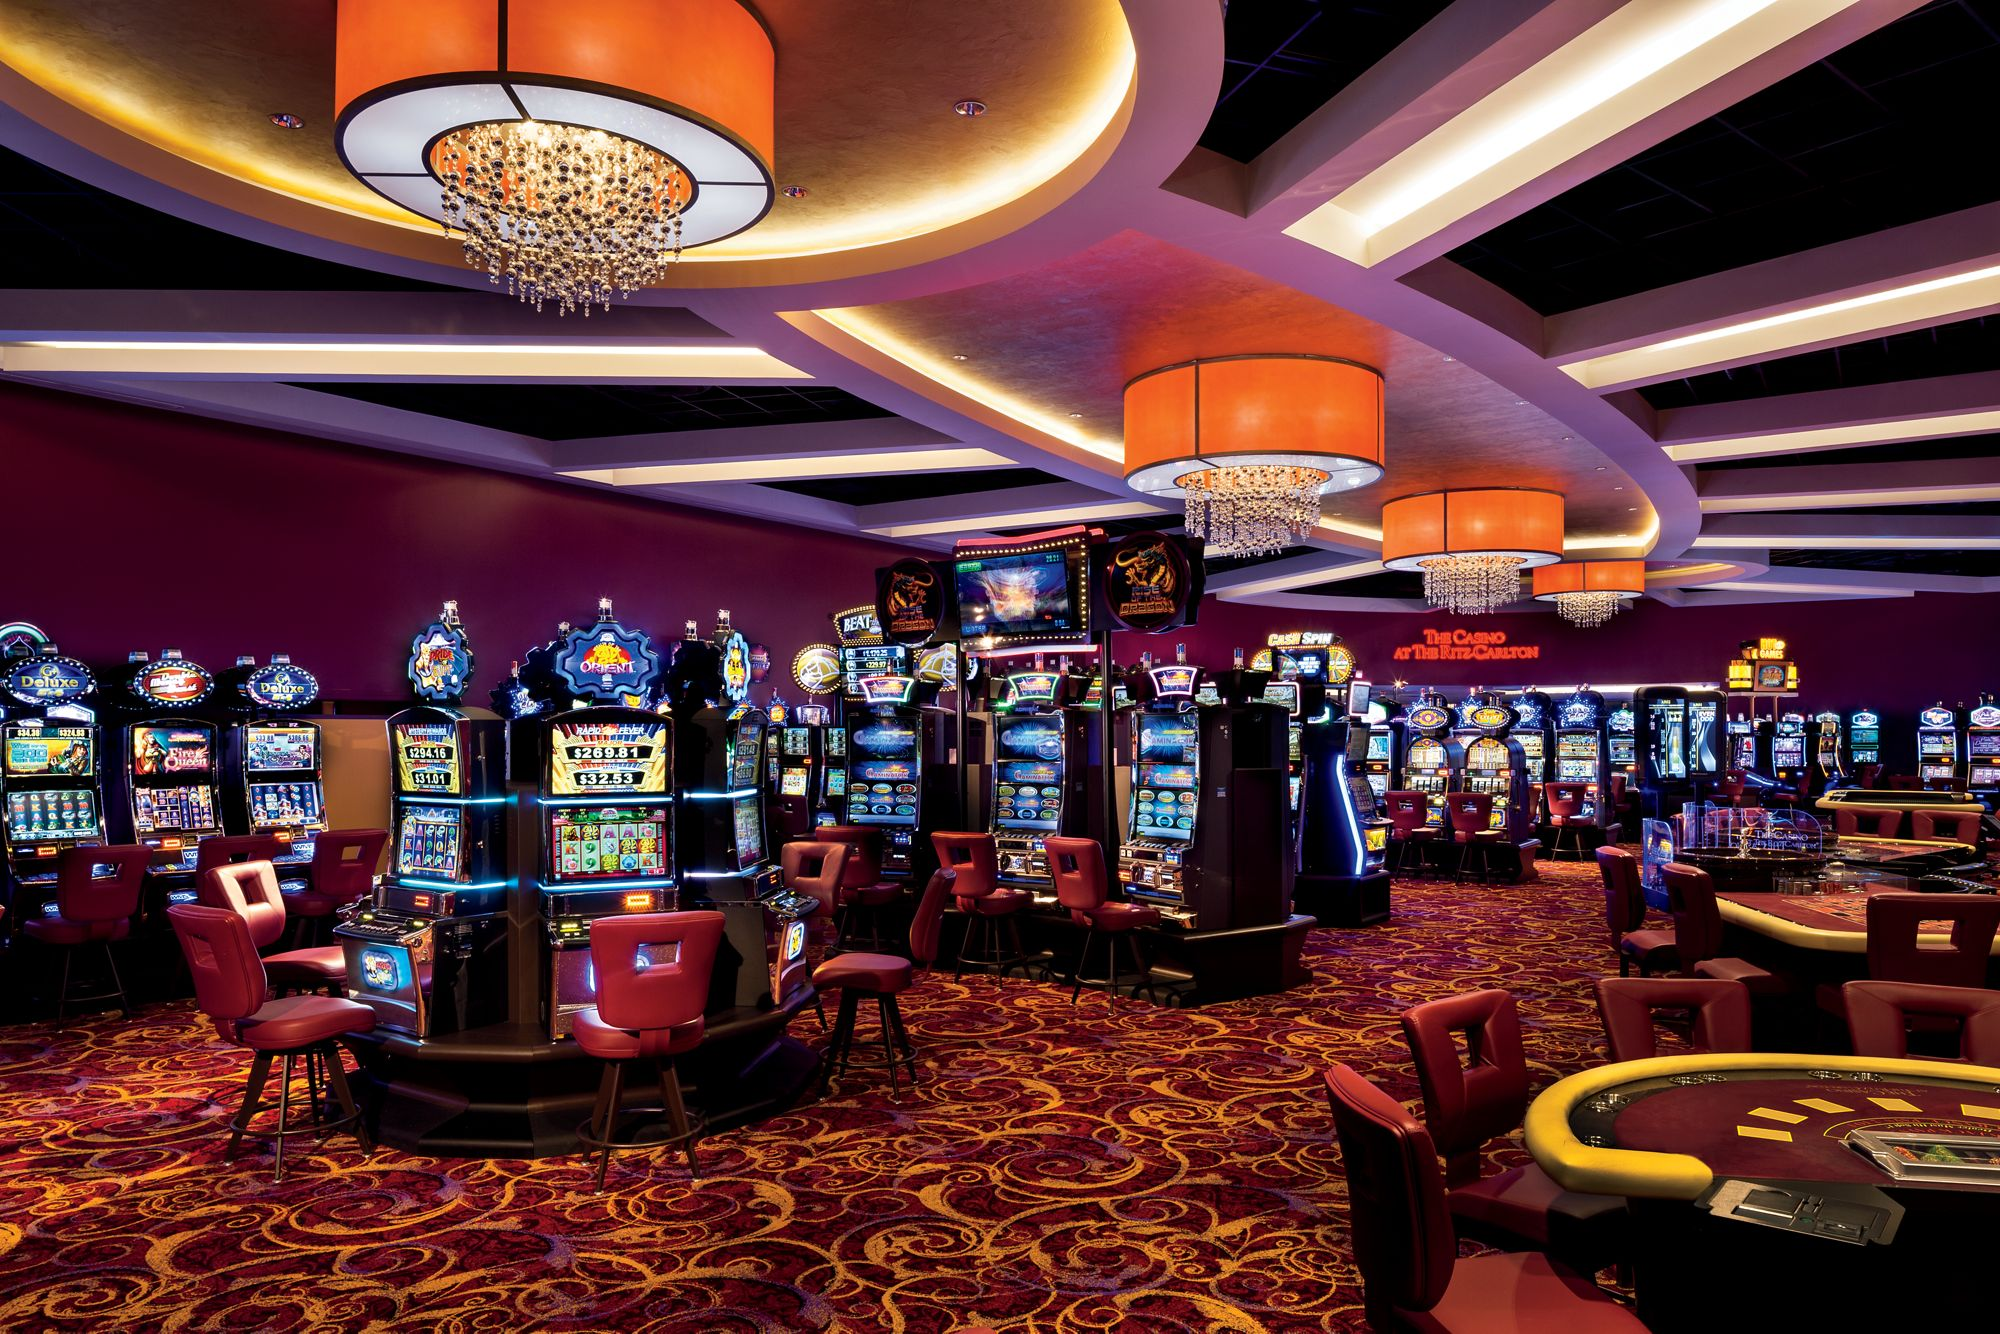 Know More About This Historic Form Of Casino Gaming